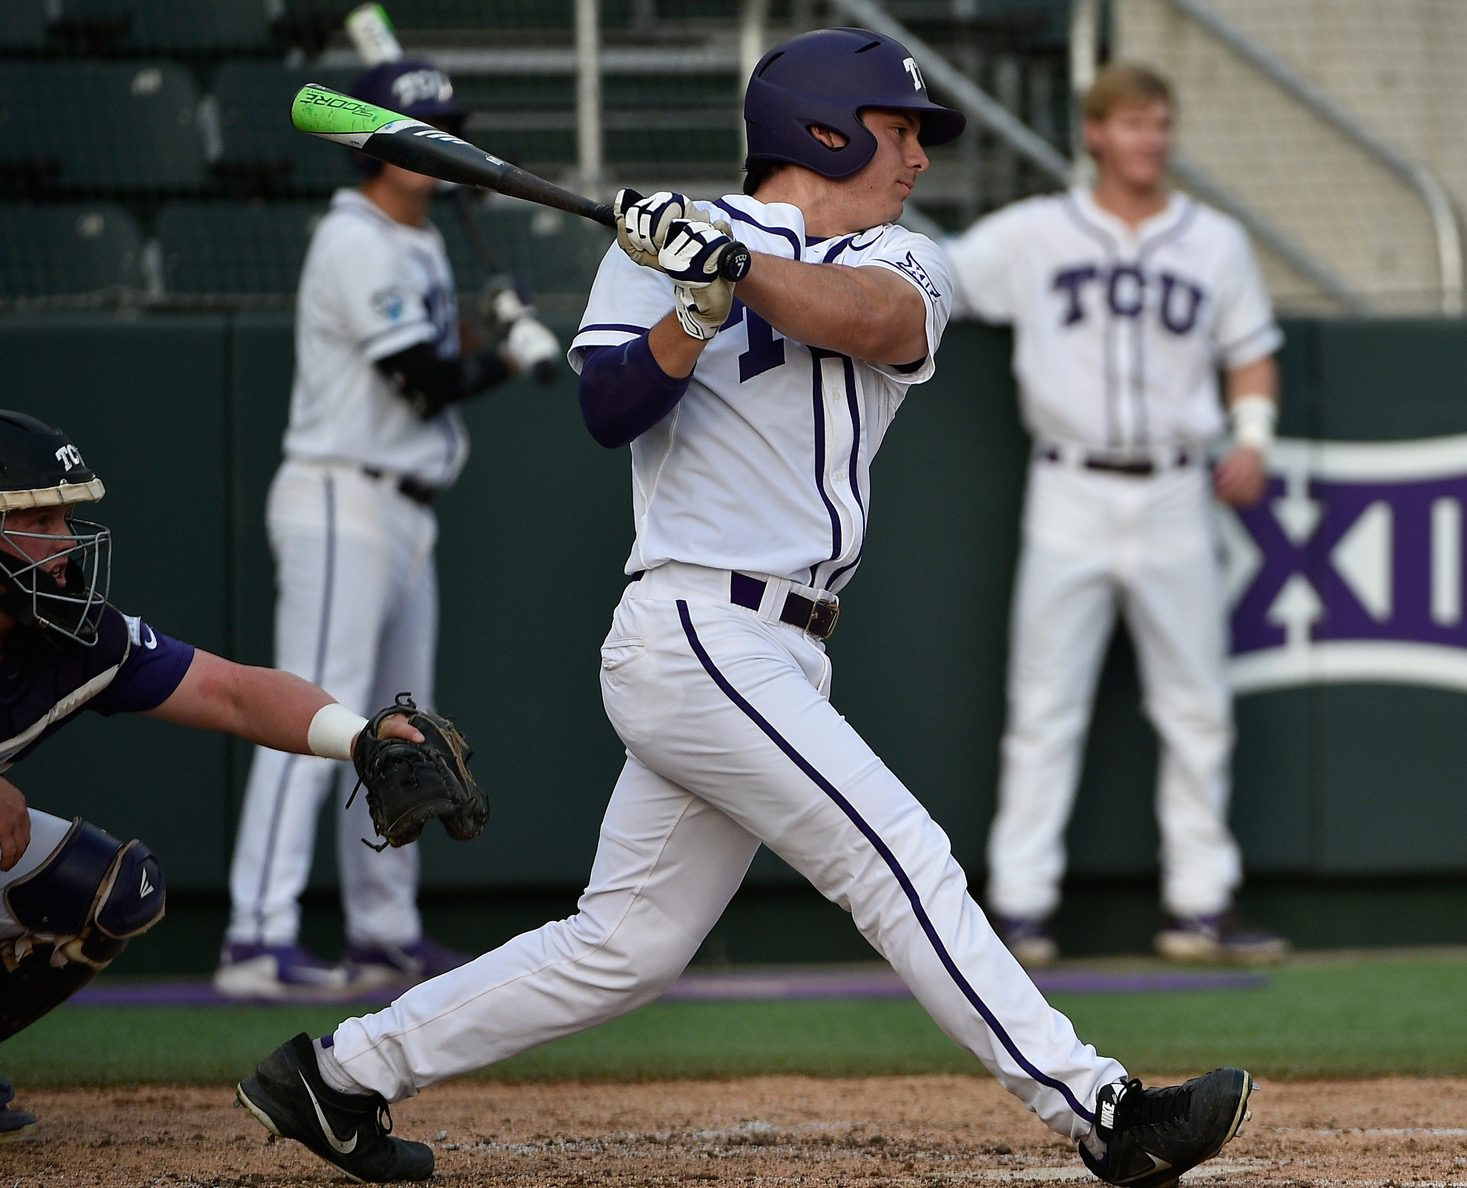 TCU's Josh Watson (Michael Clements/TCU Athletics)